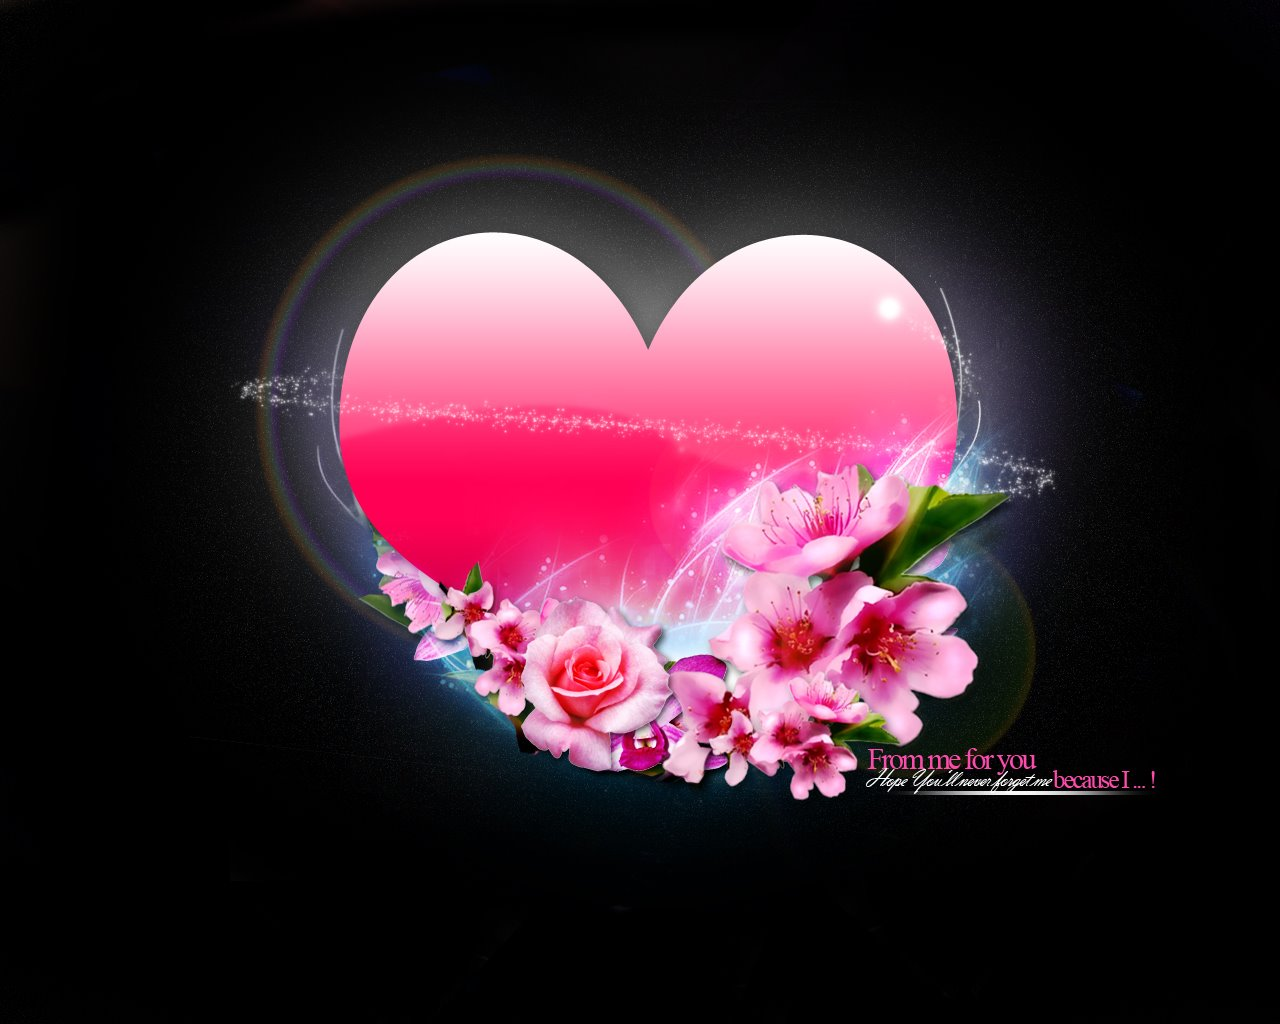 Wallpaper heart flowers flowers heart love heart flowers izmirmasajfo Choice Image